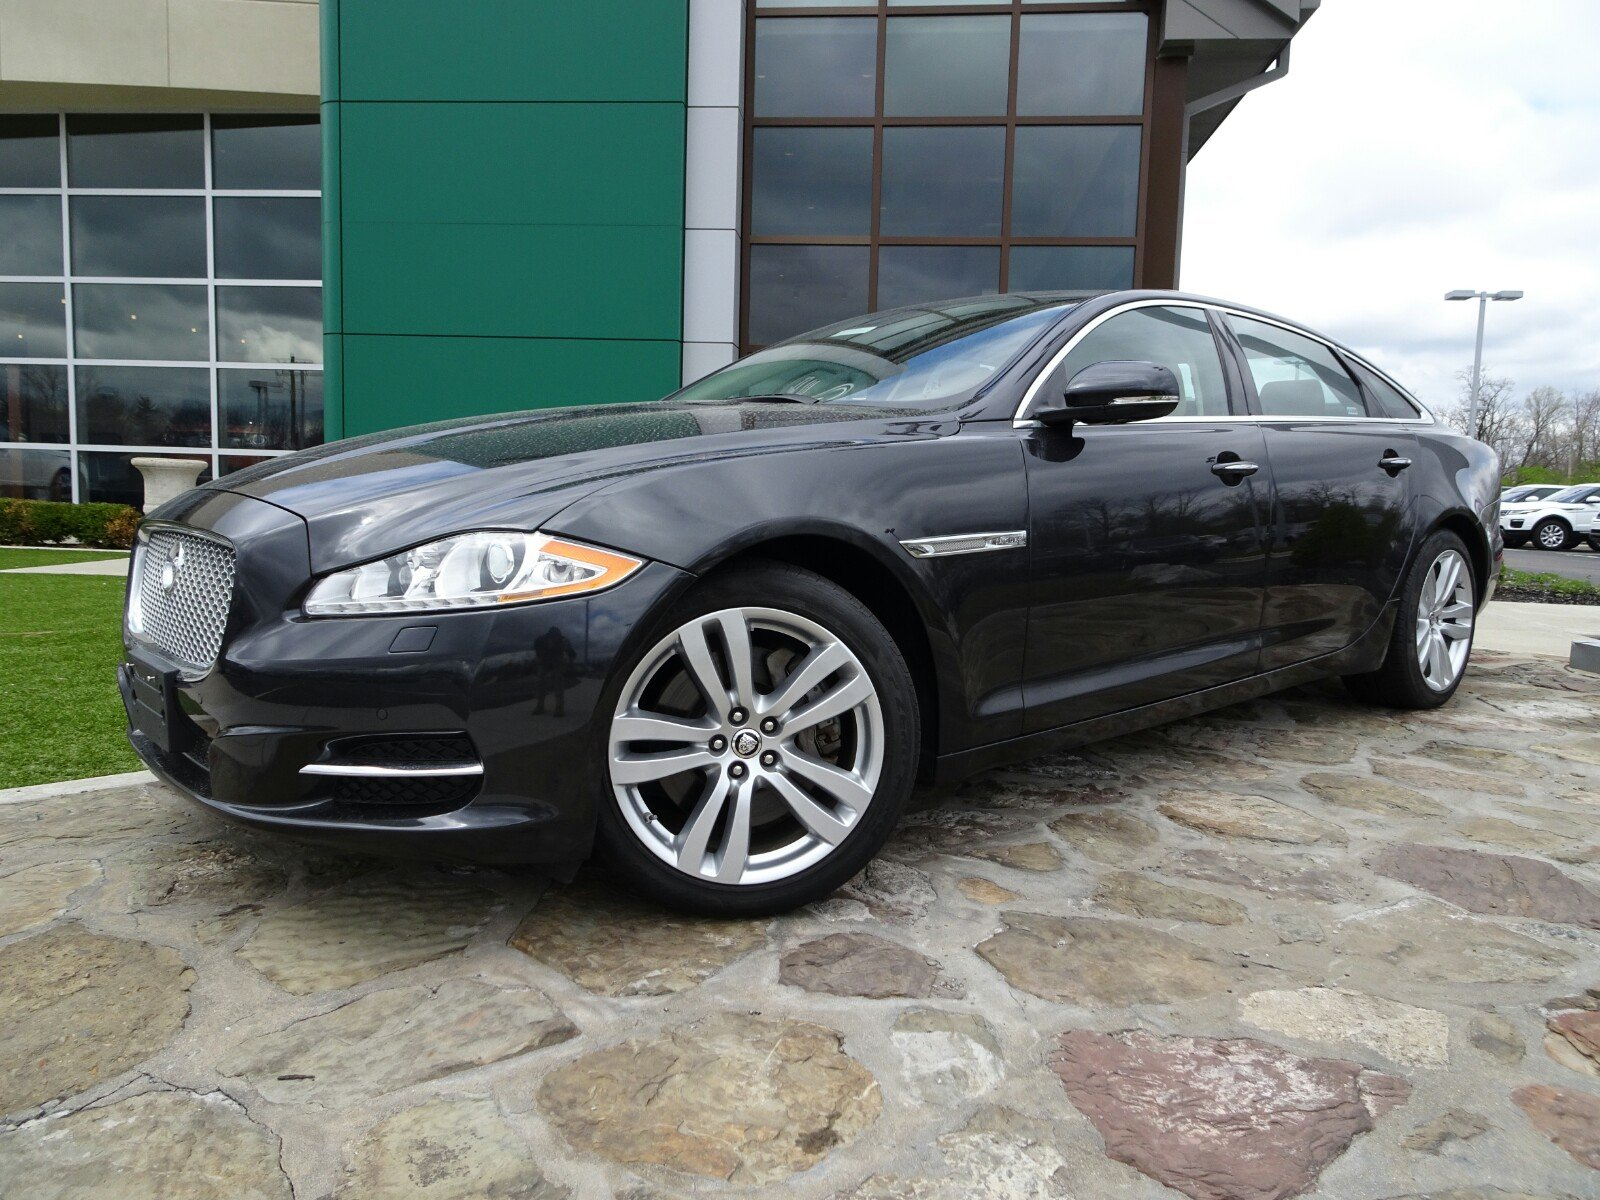 sale fs jaguar buy img forum s certified owned southwest private for xkr classifieds pre trade